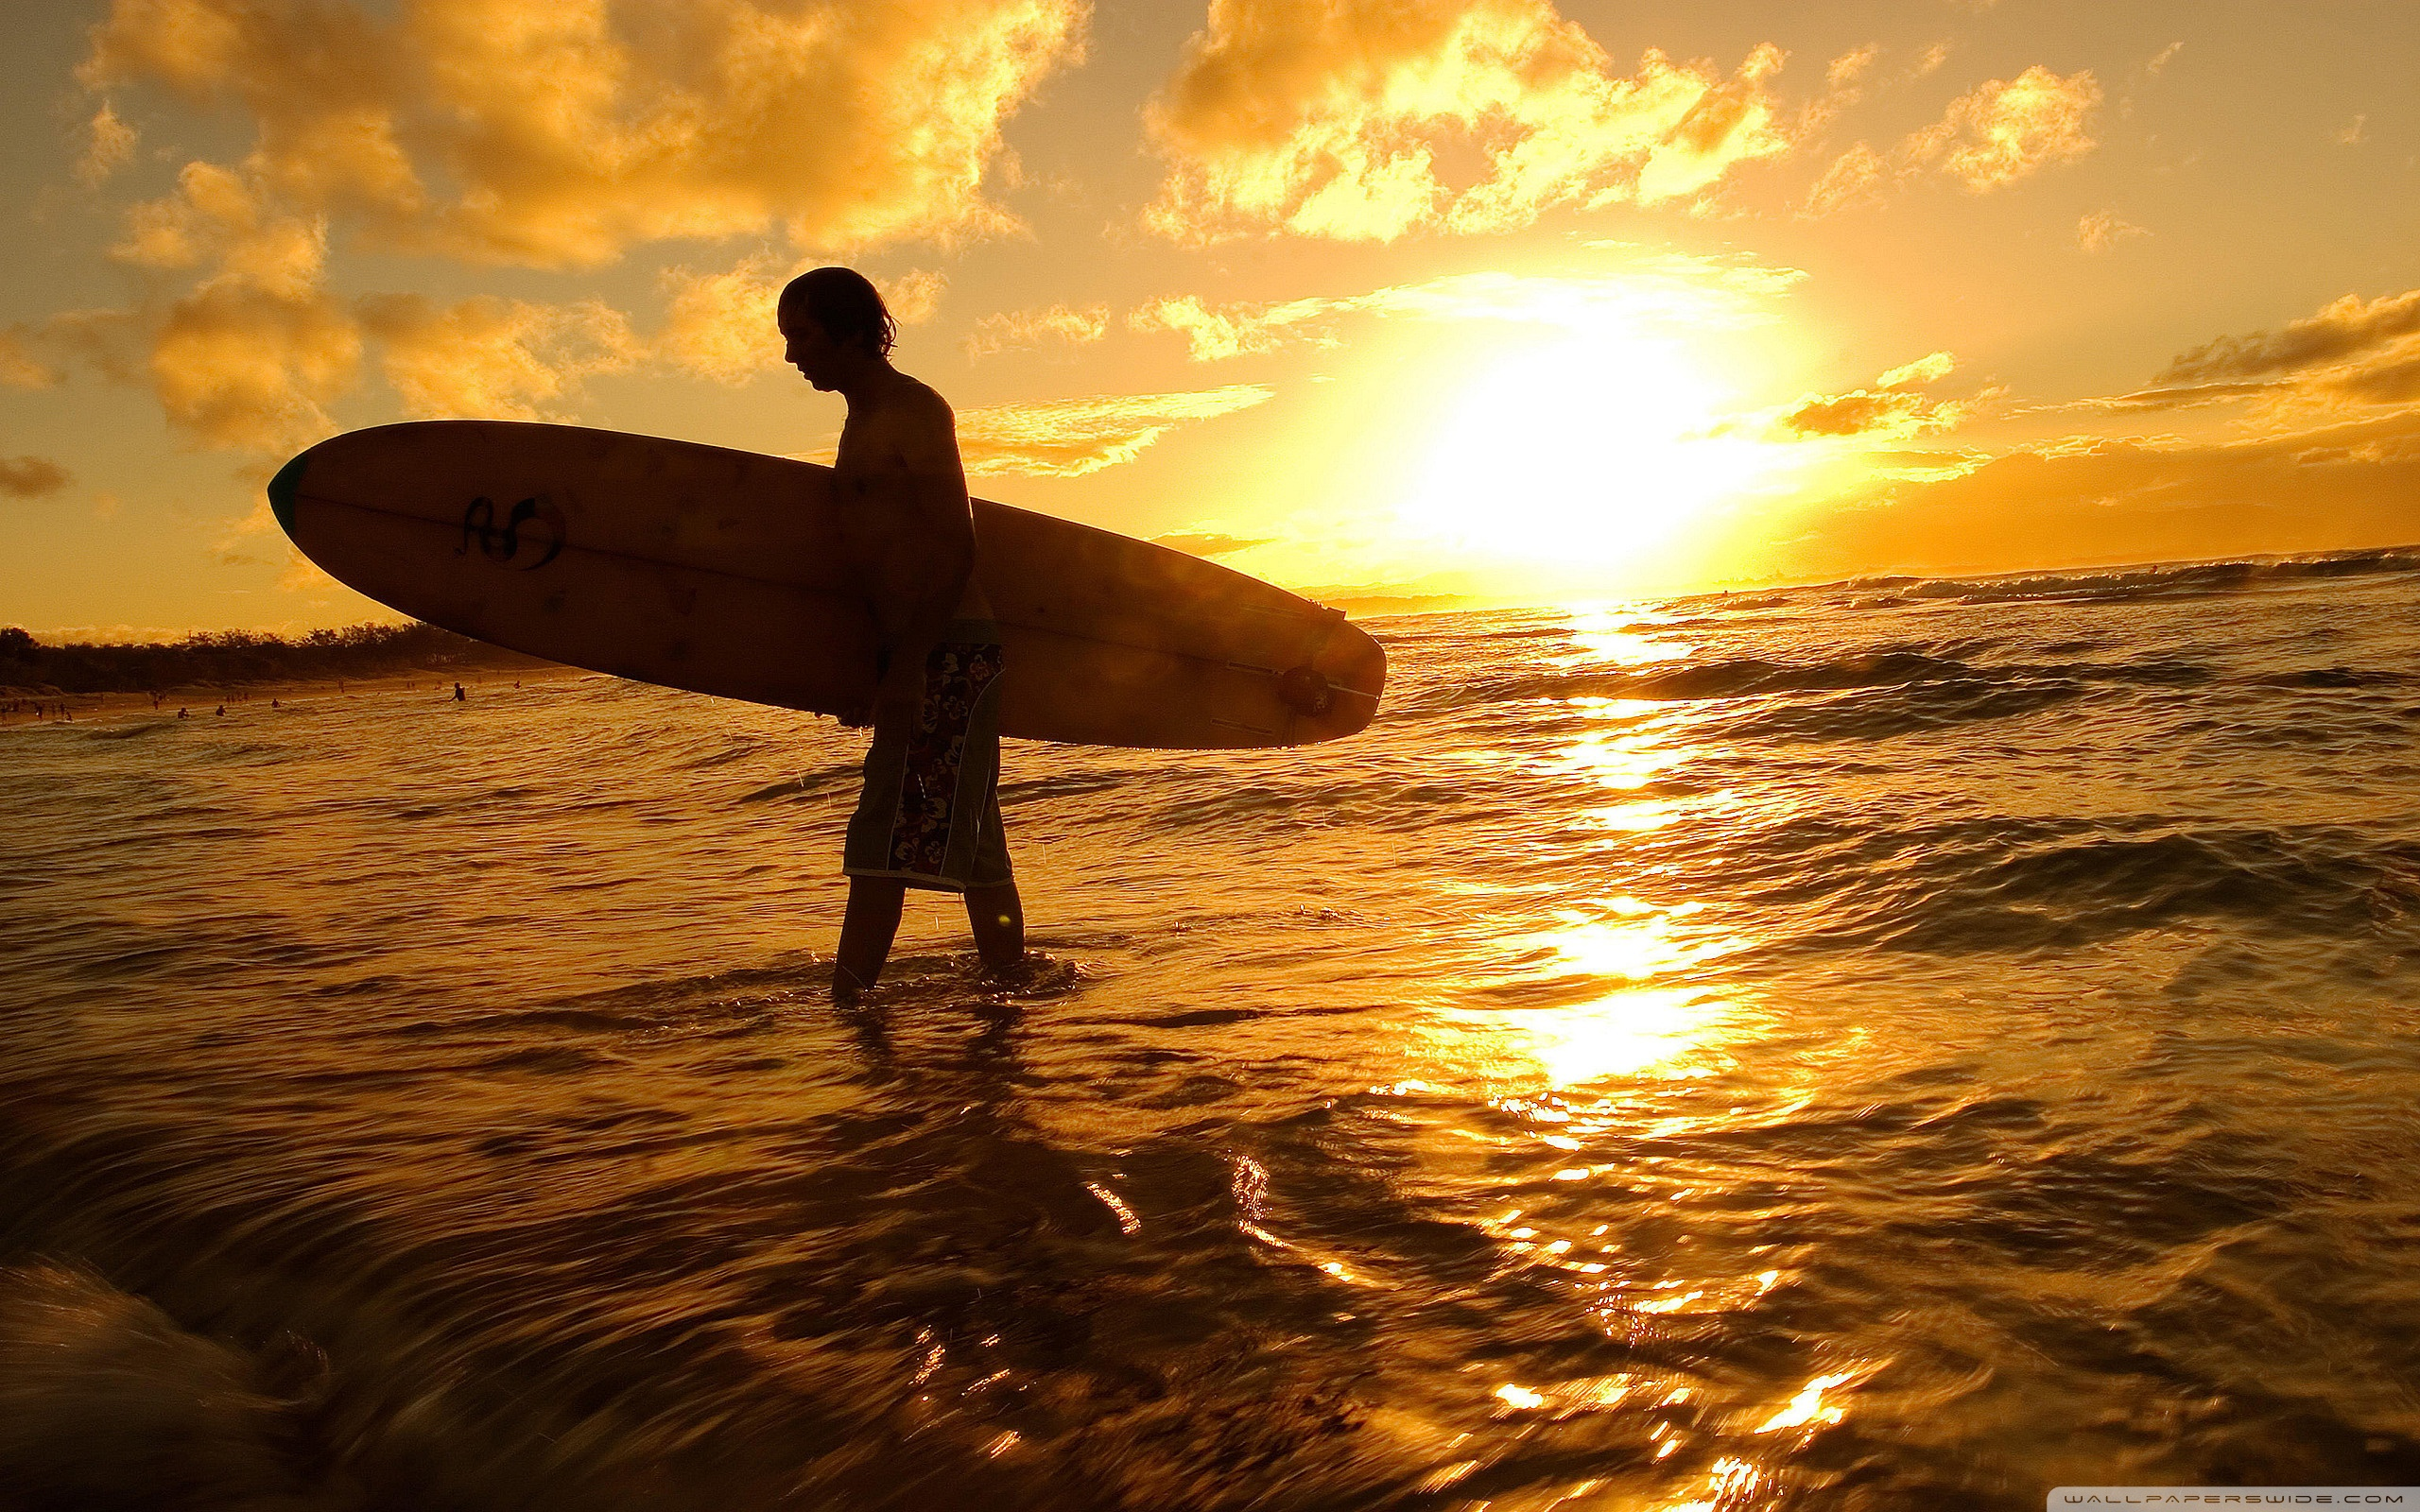 Surfer At Sunset ❤ 4K HD Desktop Wallpaper for 4K Ultra HD TV ...